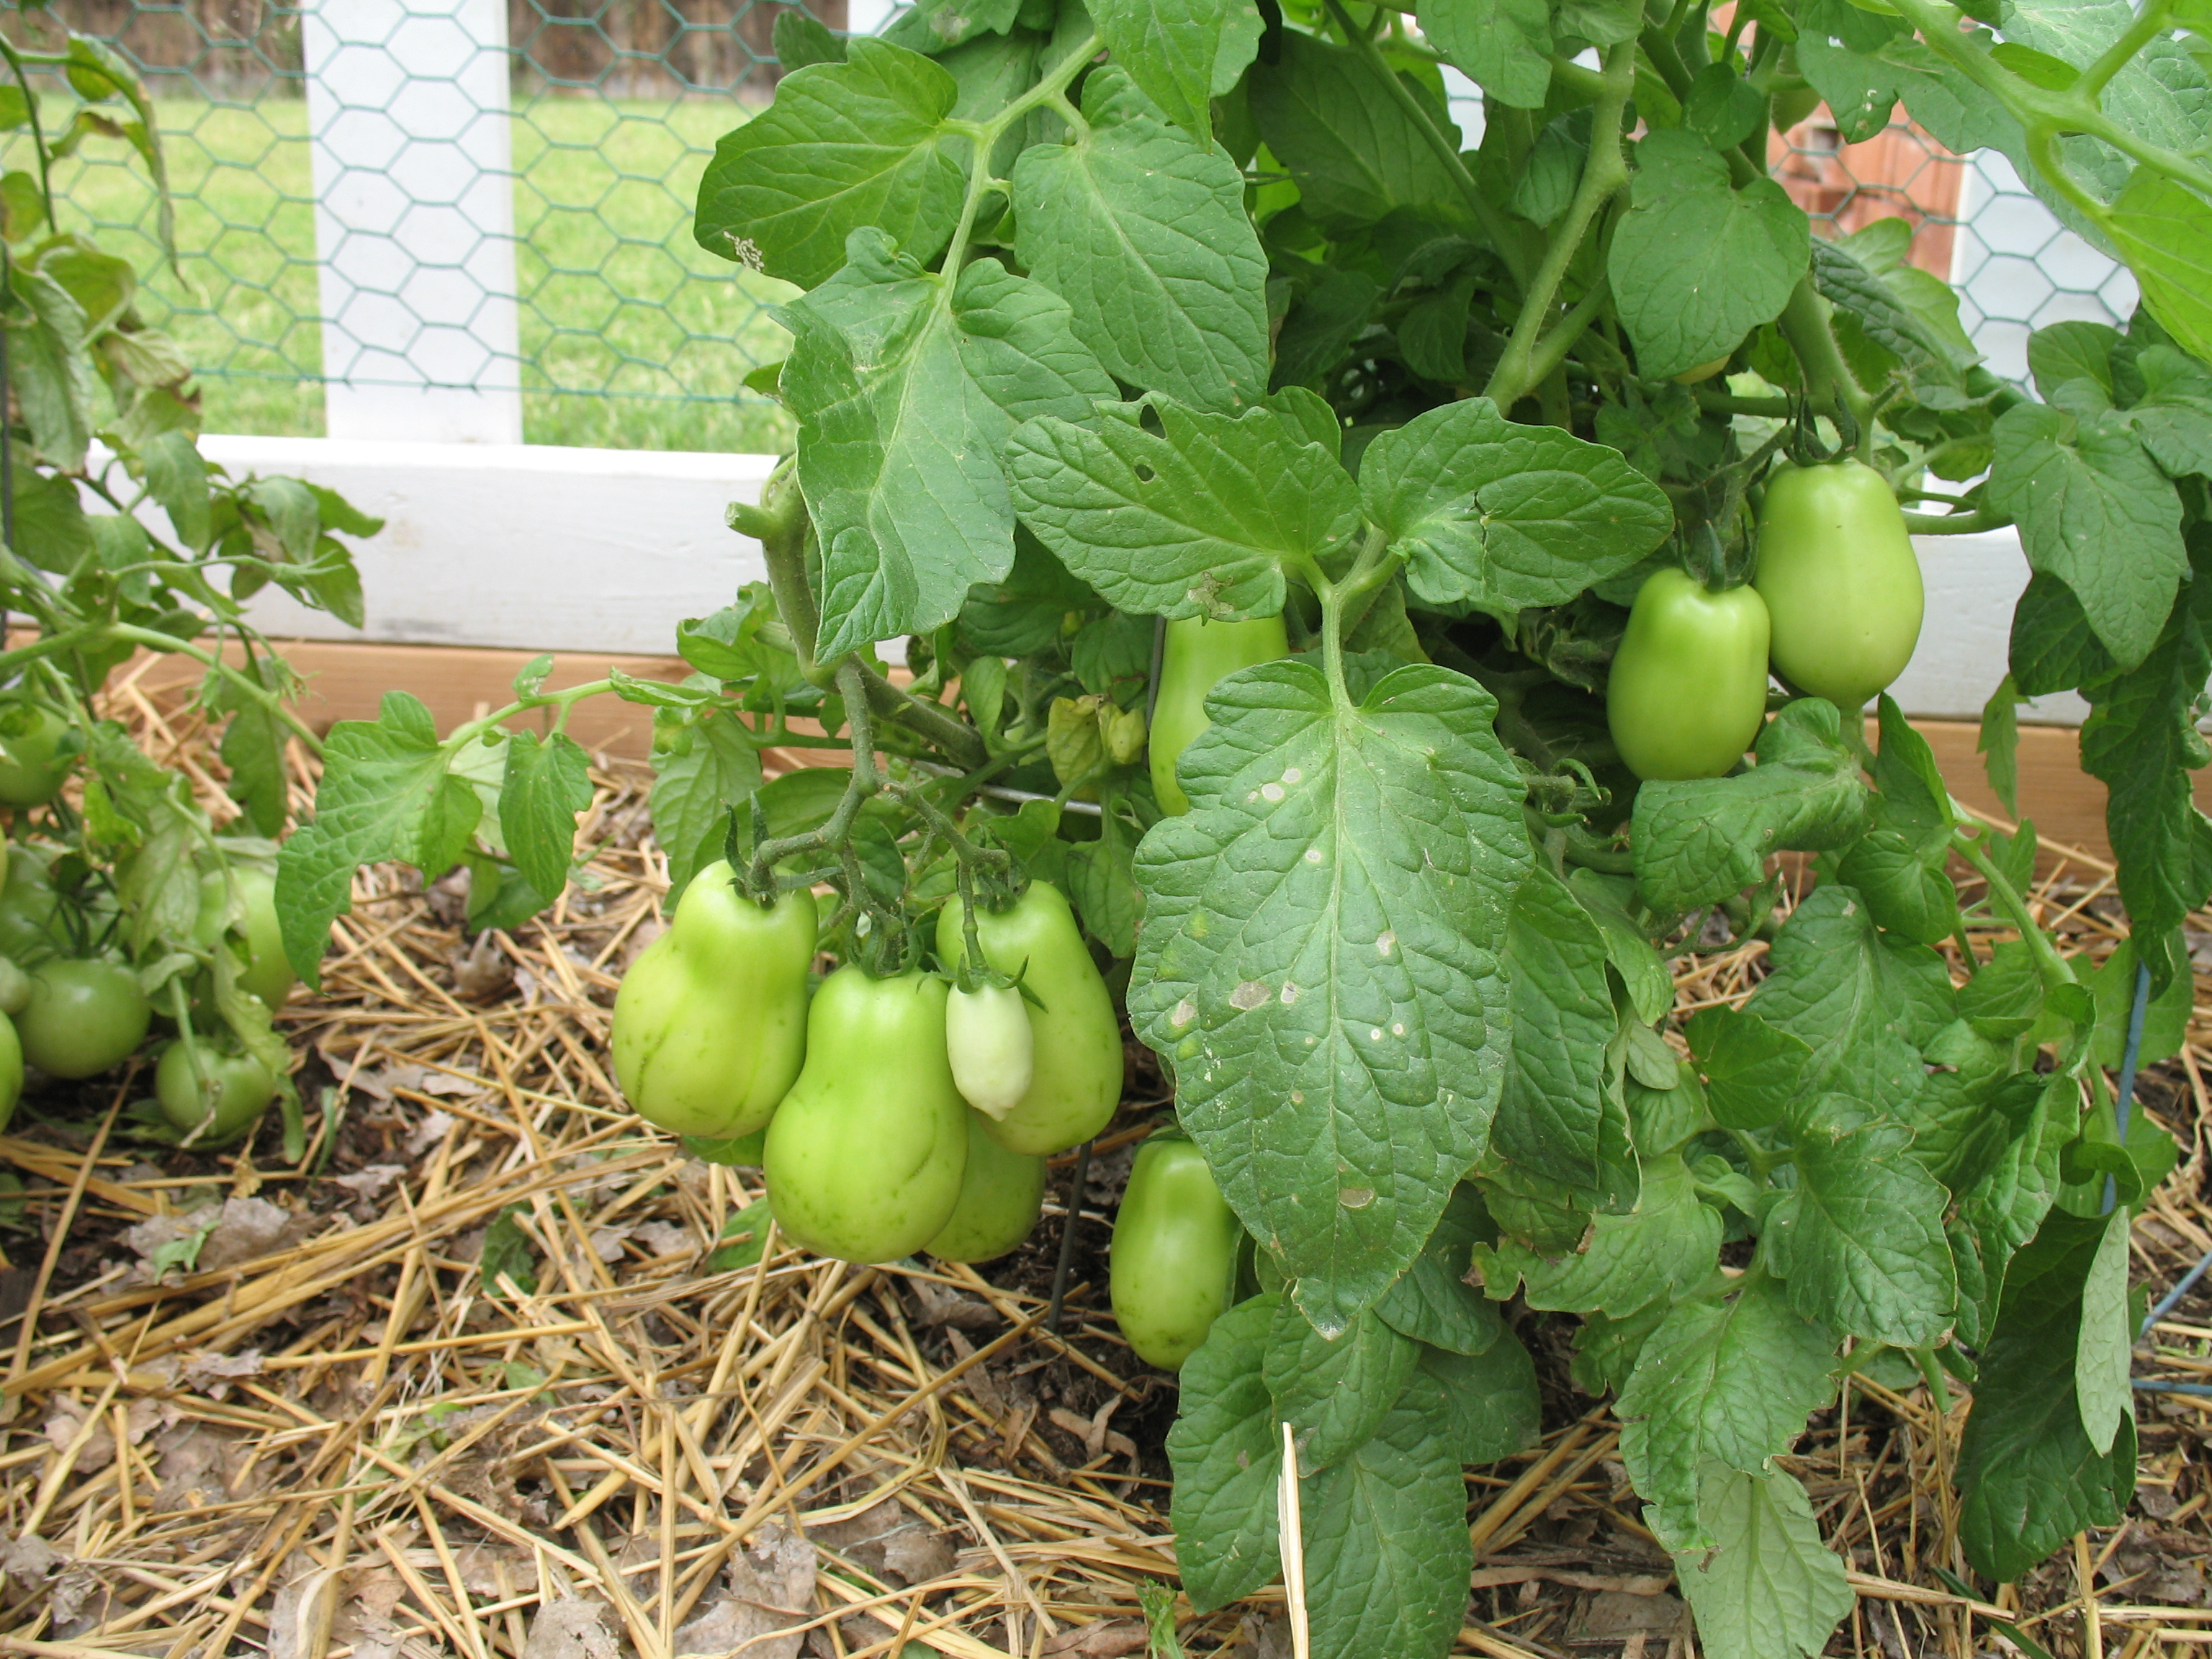 Charmant For Those Ambitious Enough To Grow Their Own Backyard Garden, Aaryn  Suggests Starting Out Small With A U201ctest Run Type Of Plot First Before  Delving Into An ...